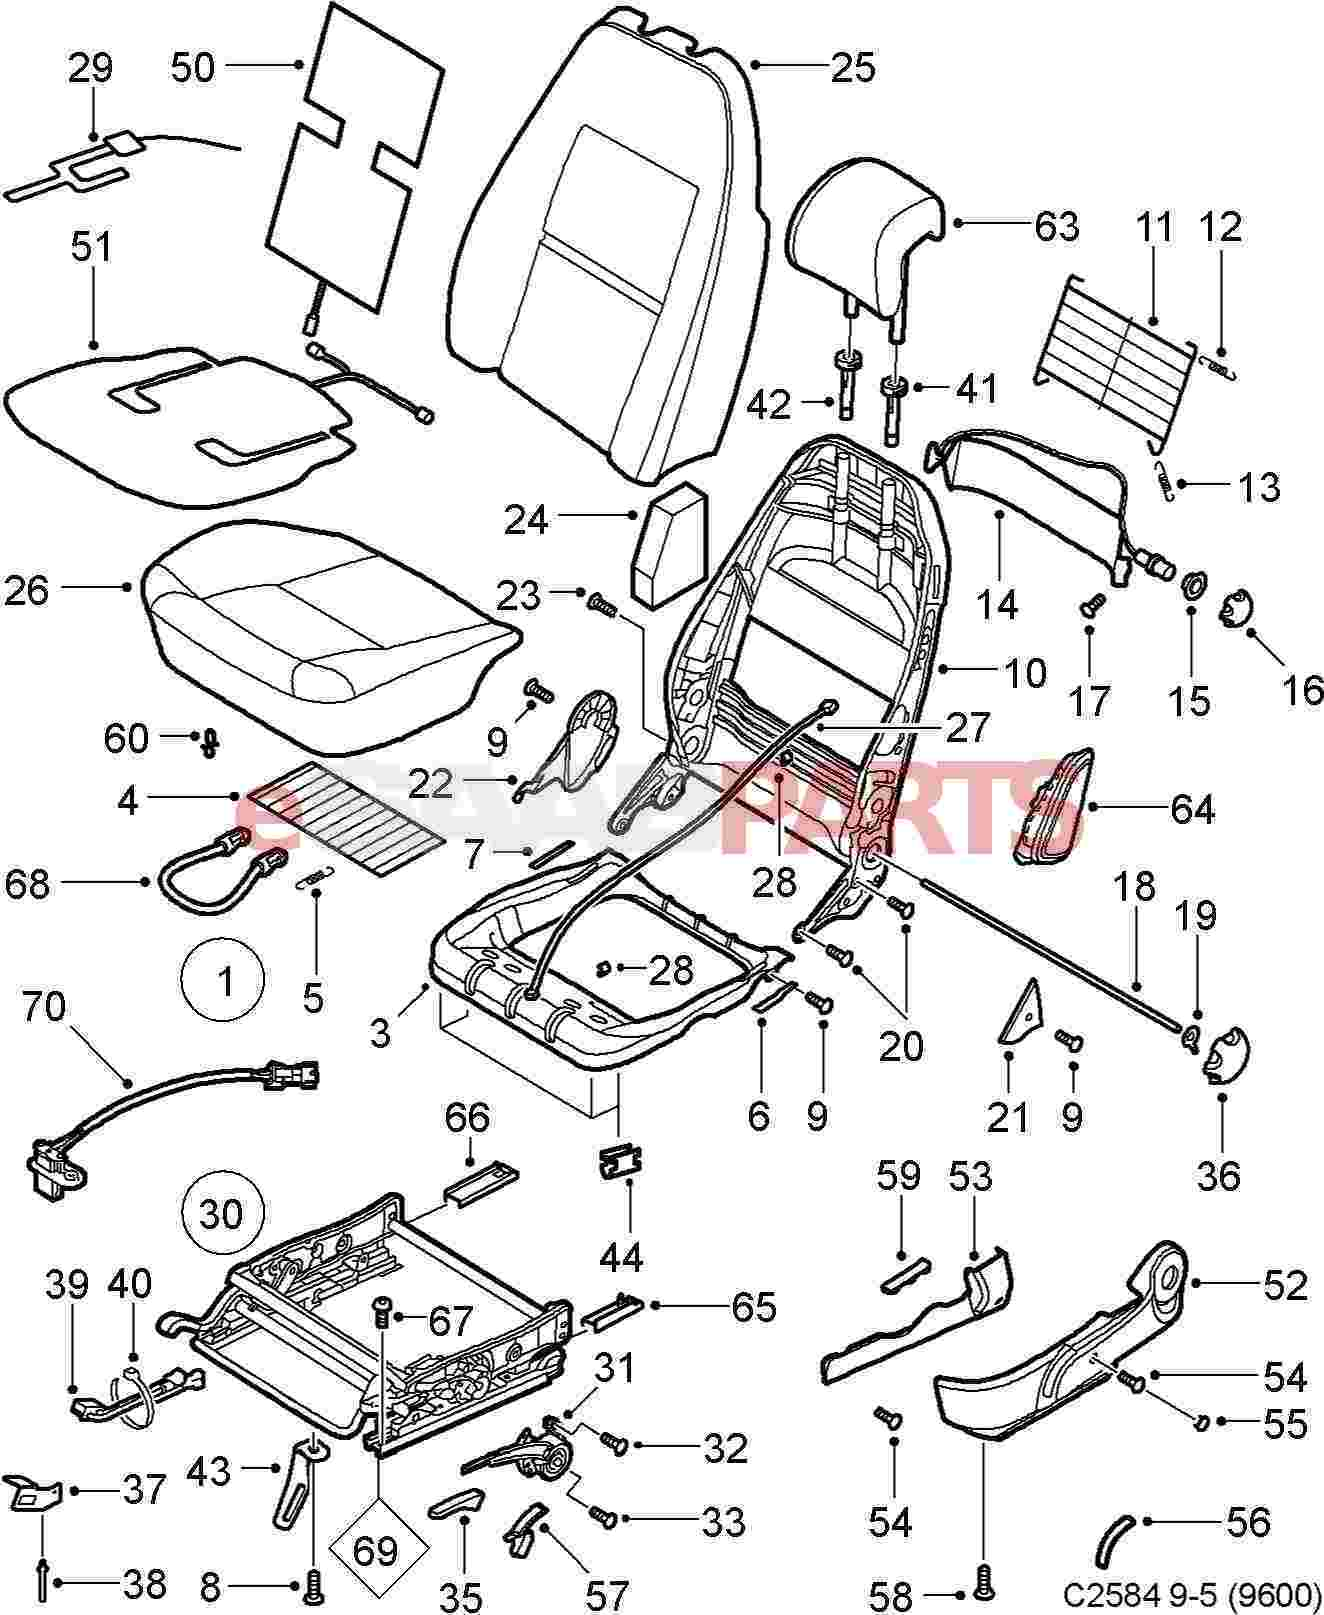 12760542 saab passenger seat occupancy sensor genuine saab parts rh esaabparts com saab 93 parts diagram saab 900 parts diagram